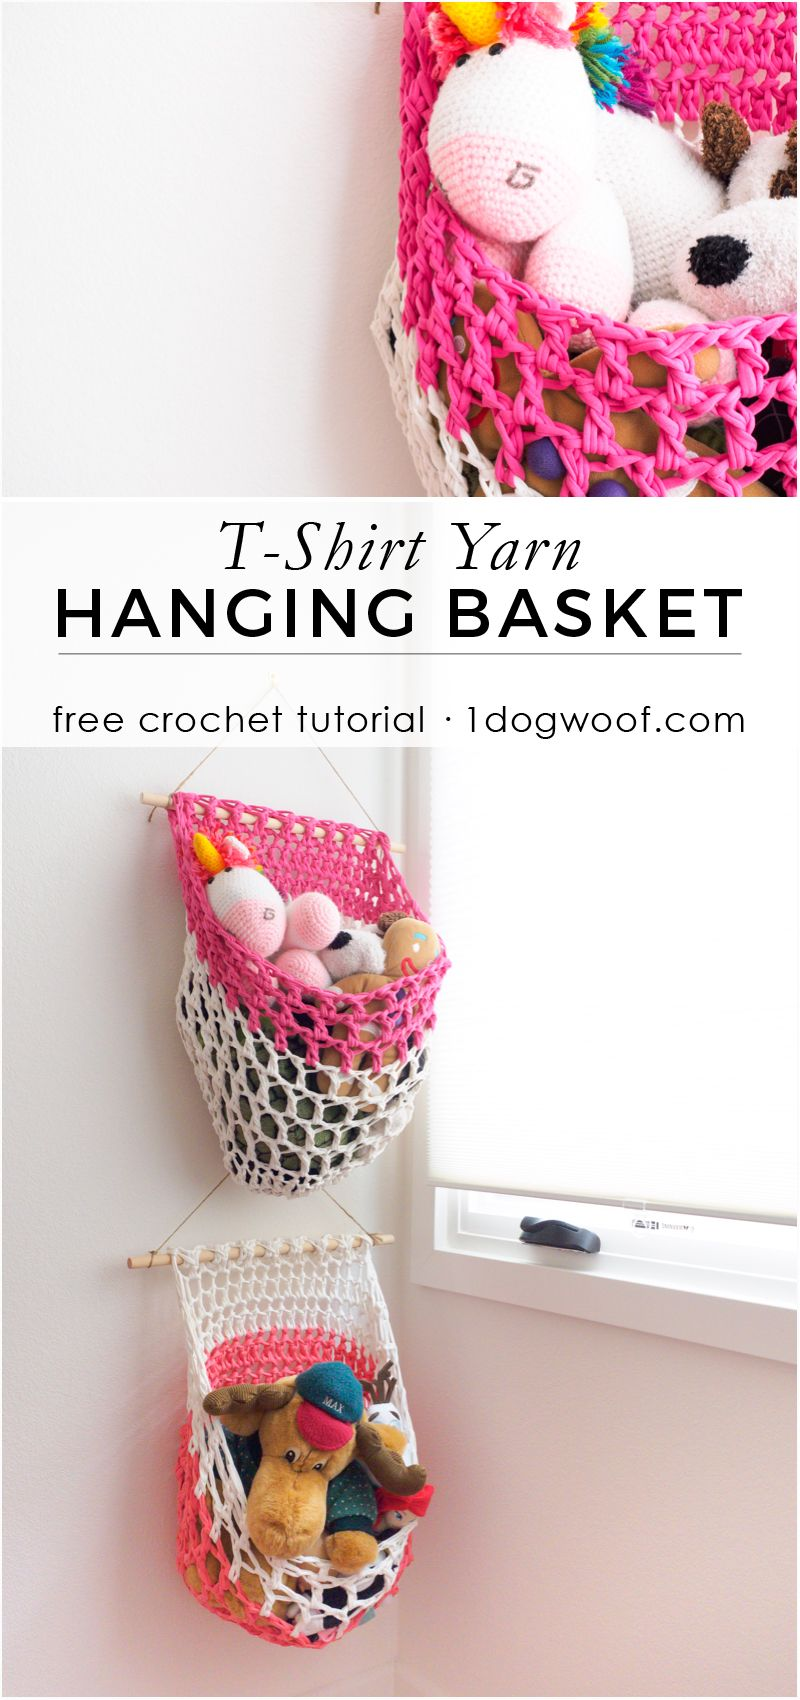 T-Shirt Yarn Hanging Basket Crochet Pattern | Trapillo, Cesto y Cestas